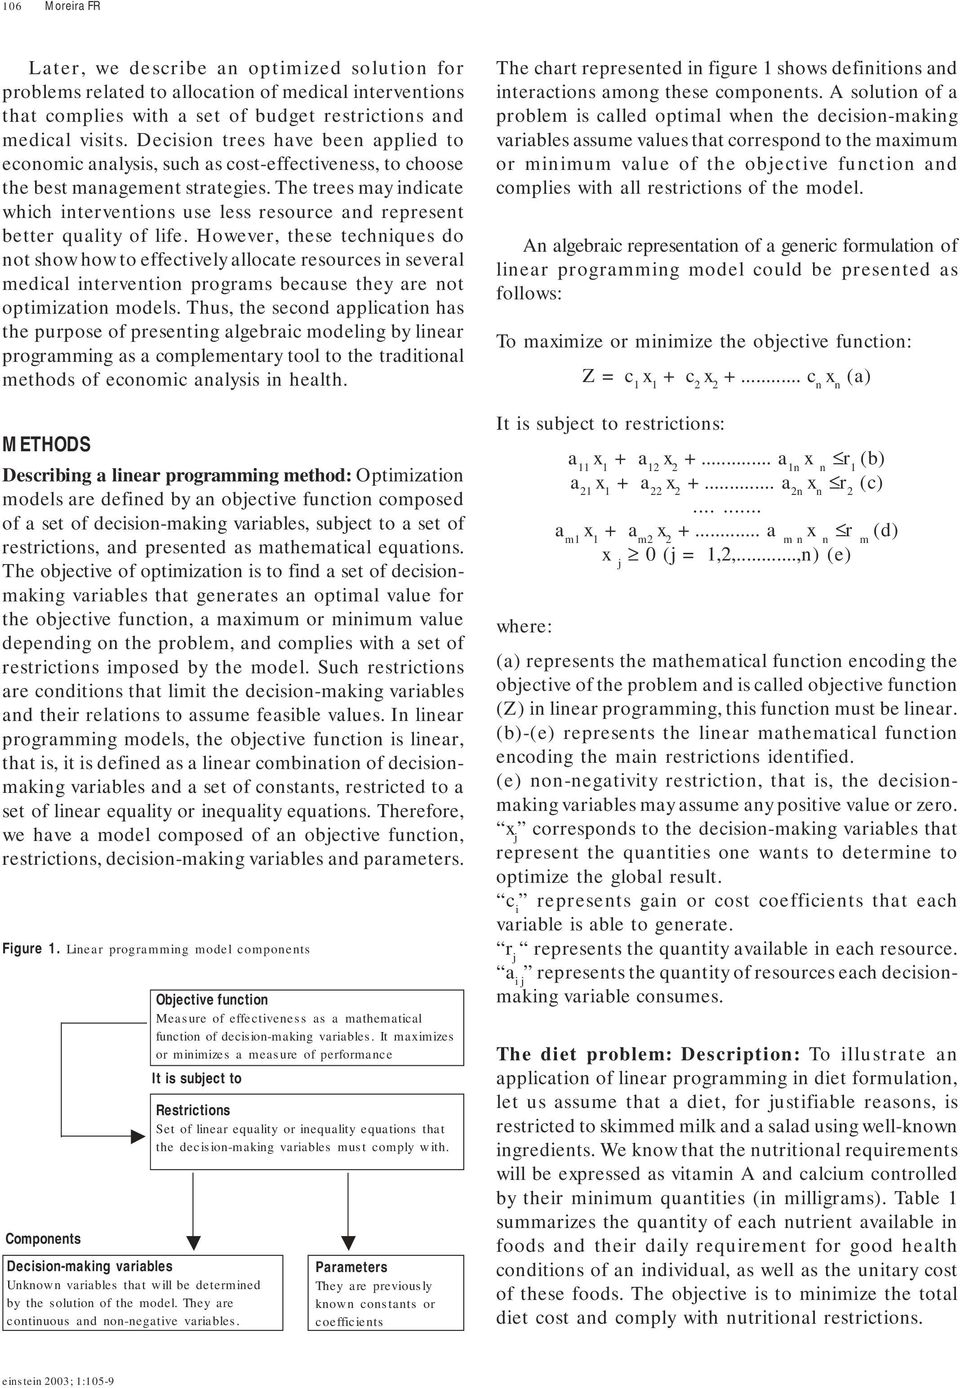 ... Array - linear programming applied to healthcare problems pdf rh  docplayer net